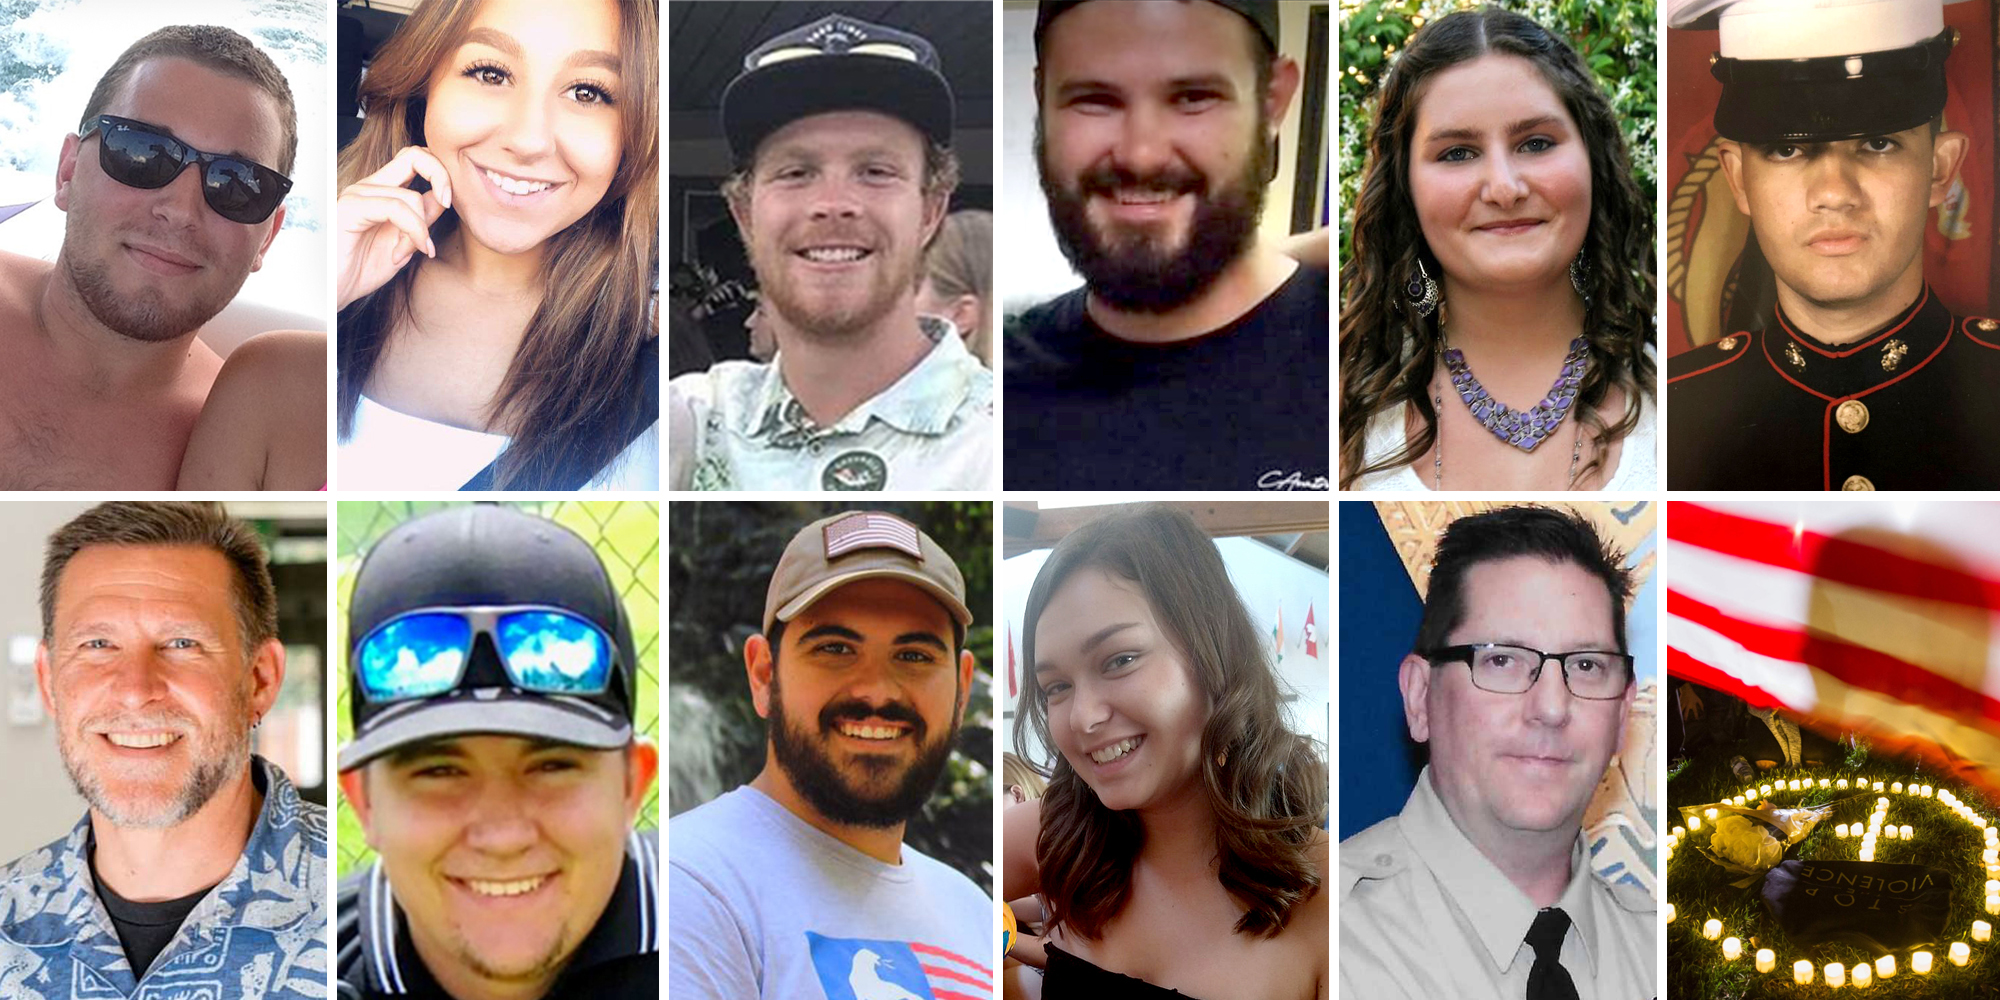 Victims-of-Thousand-Oaks-shooting-were-full-of-hope-and-heroism